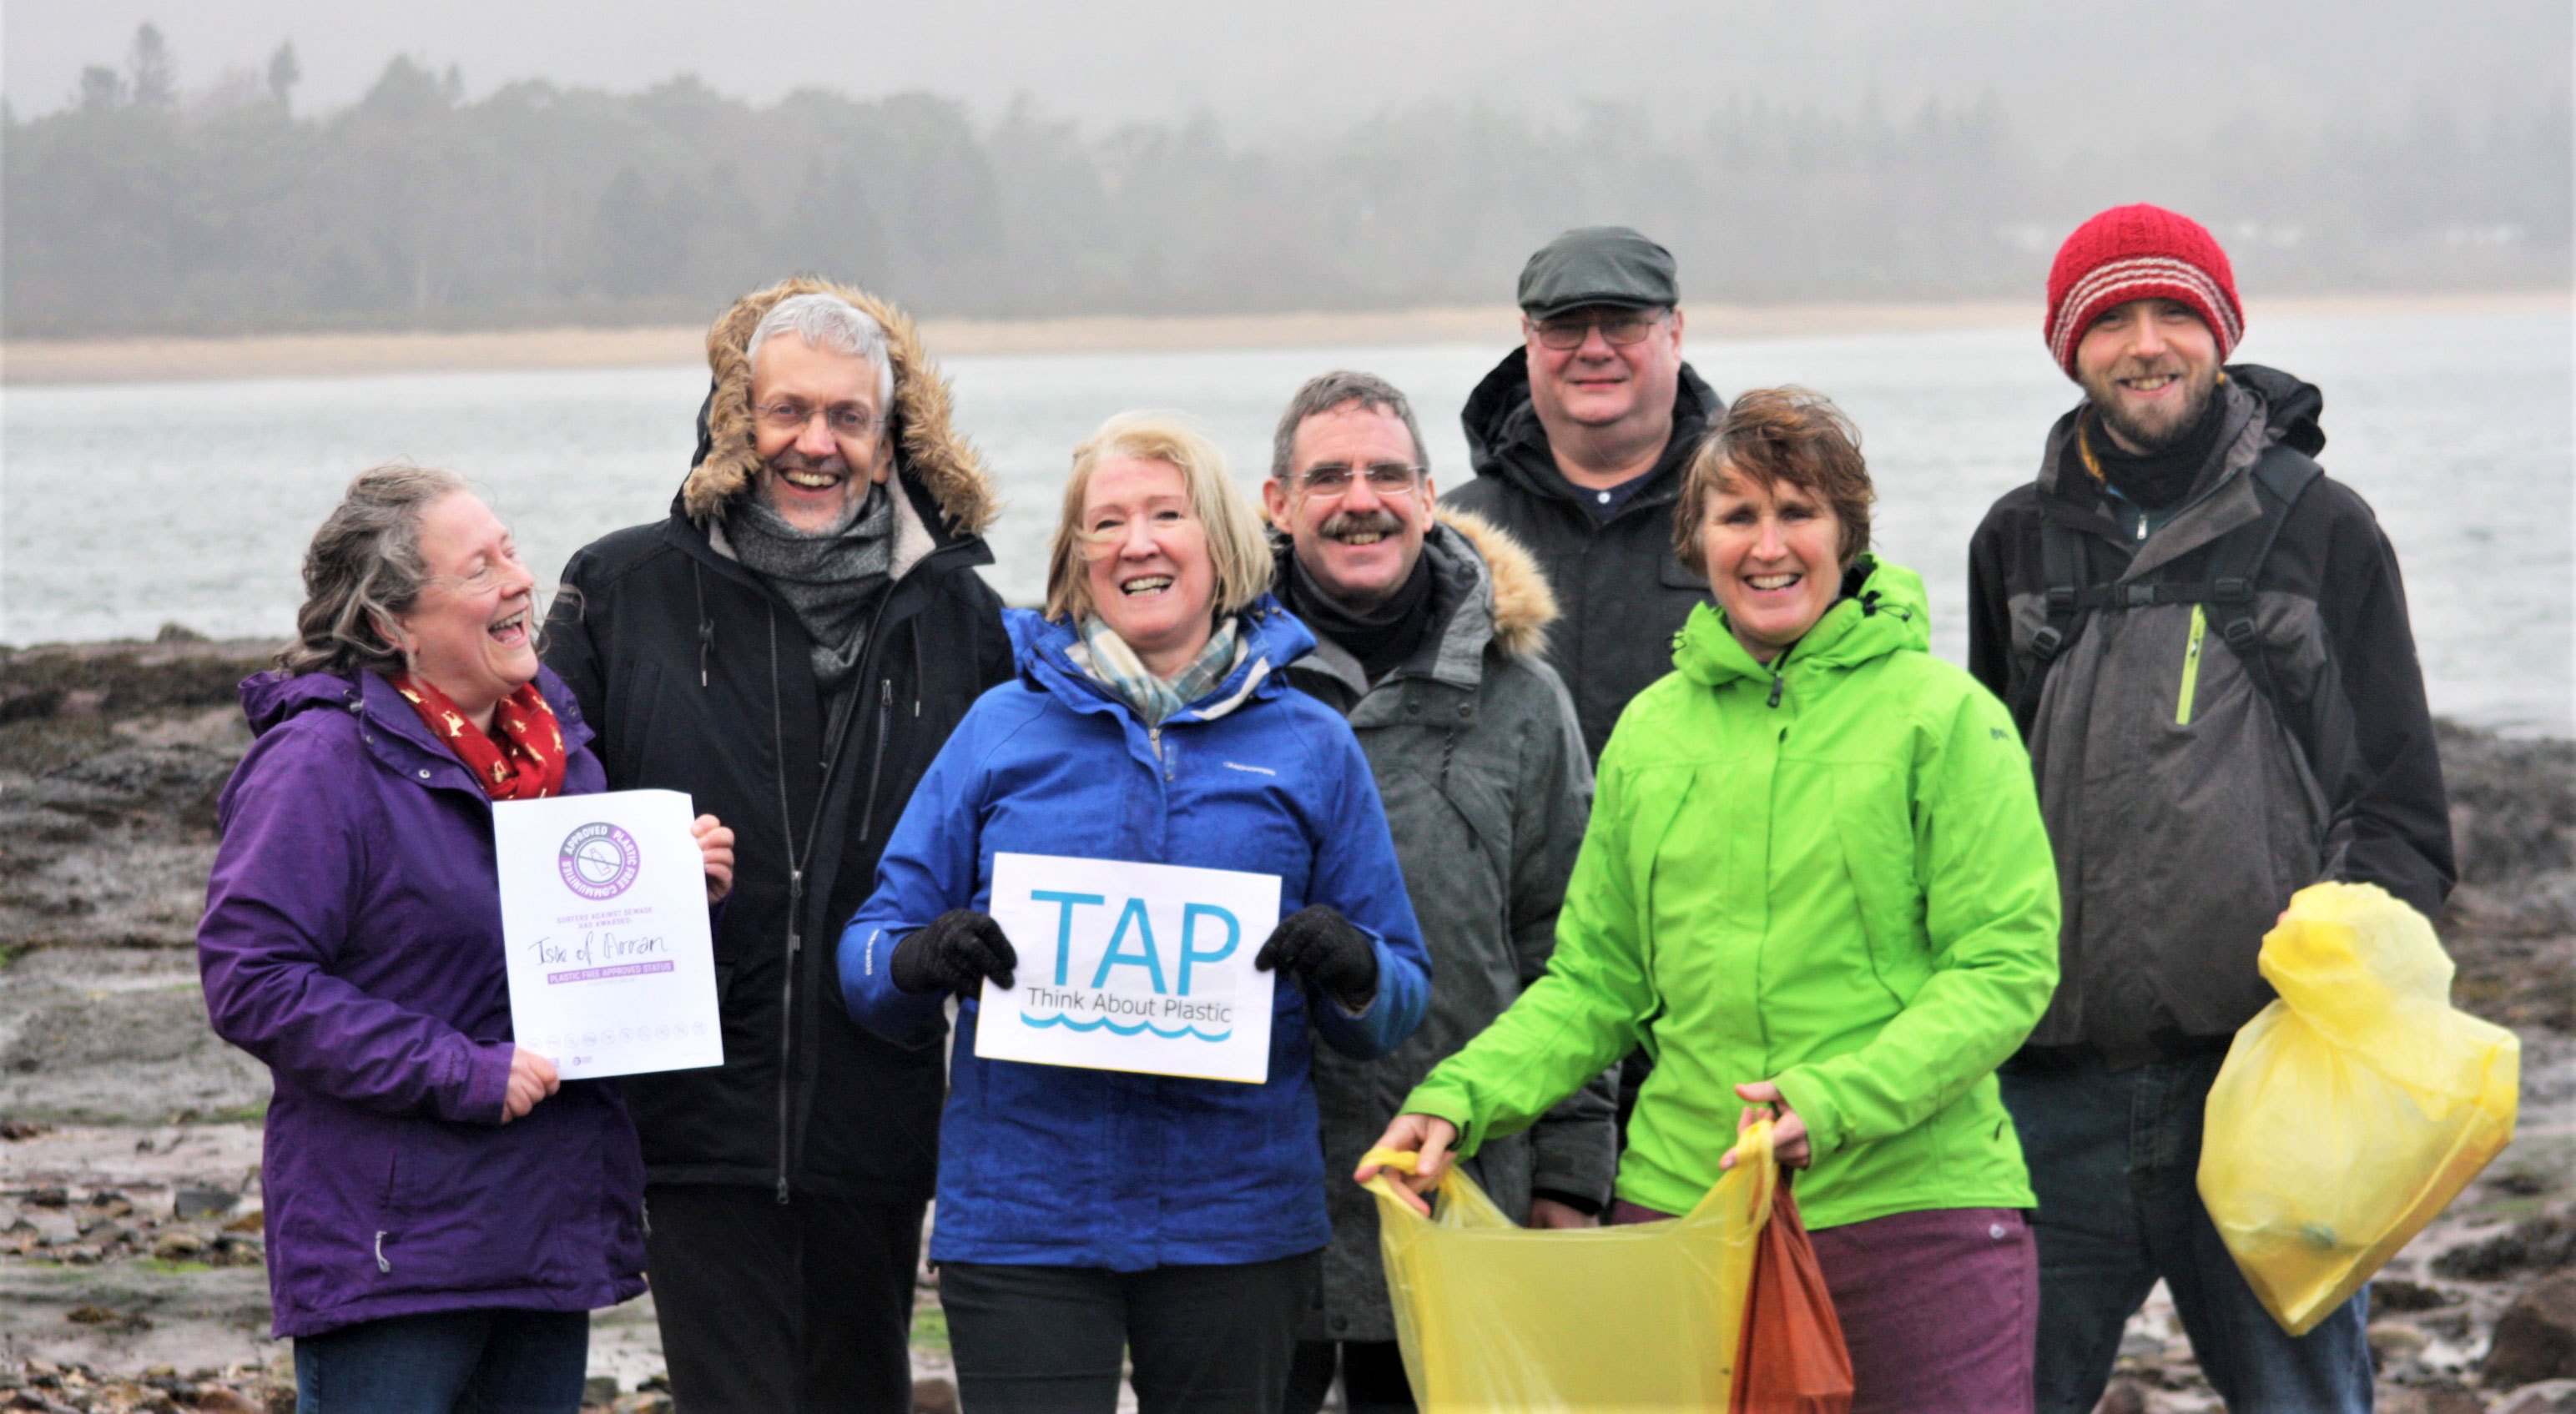 The TAP steering group celebrates winning Plastic-Free Community status for Arran